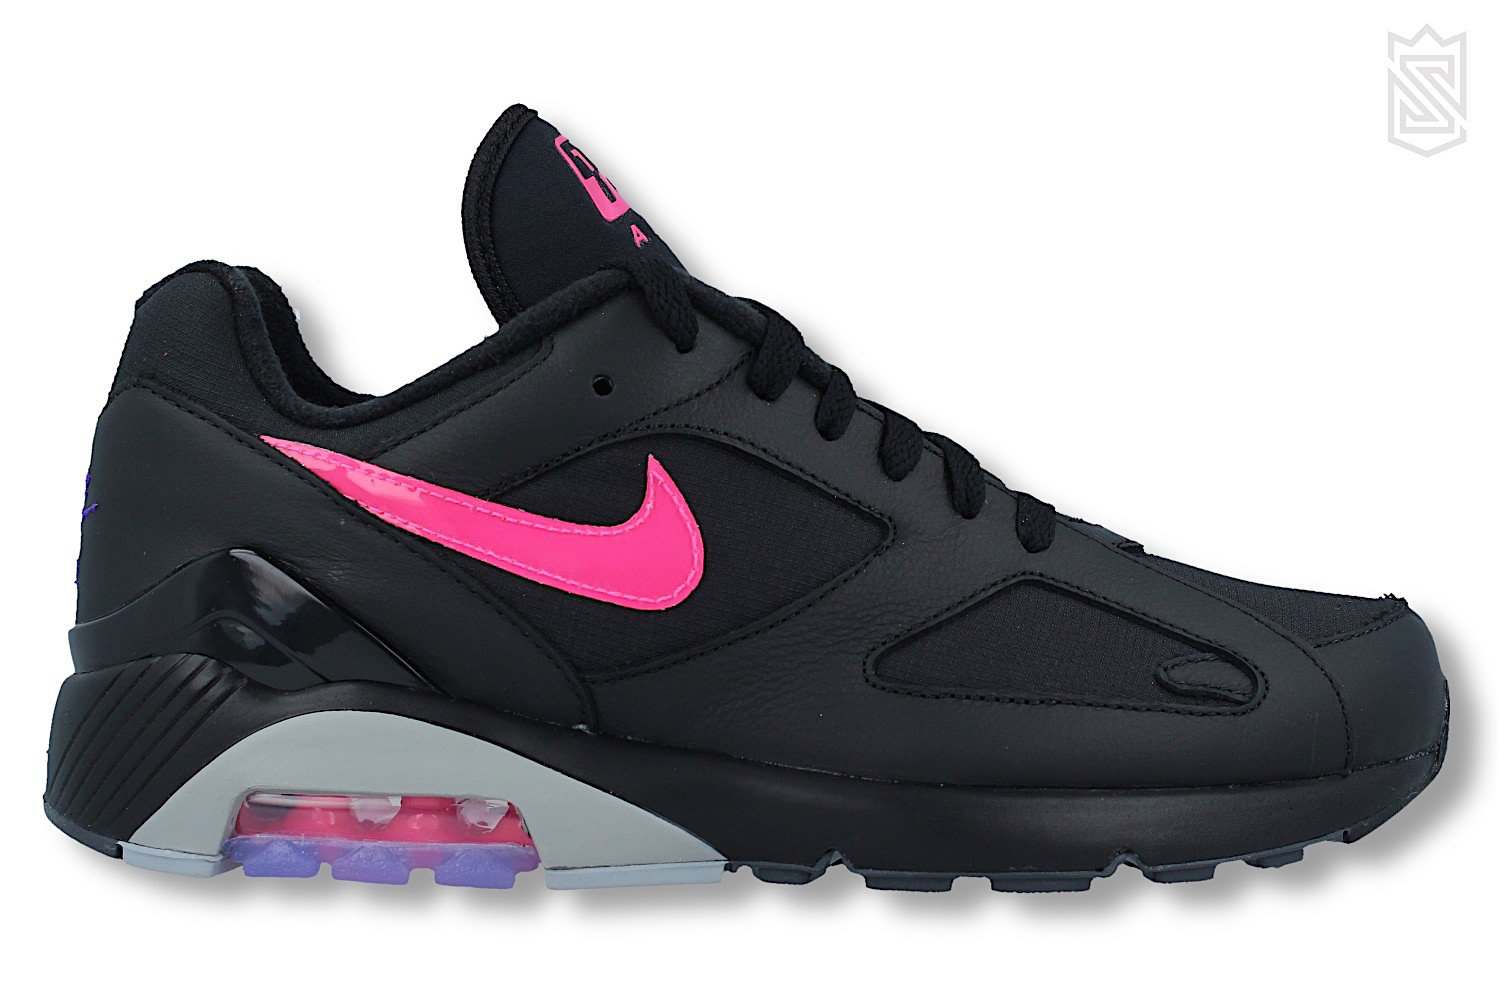 2dc90bb168d Nike Air Max 180 | Nike Air Max 180 sale | Sneakers4u